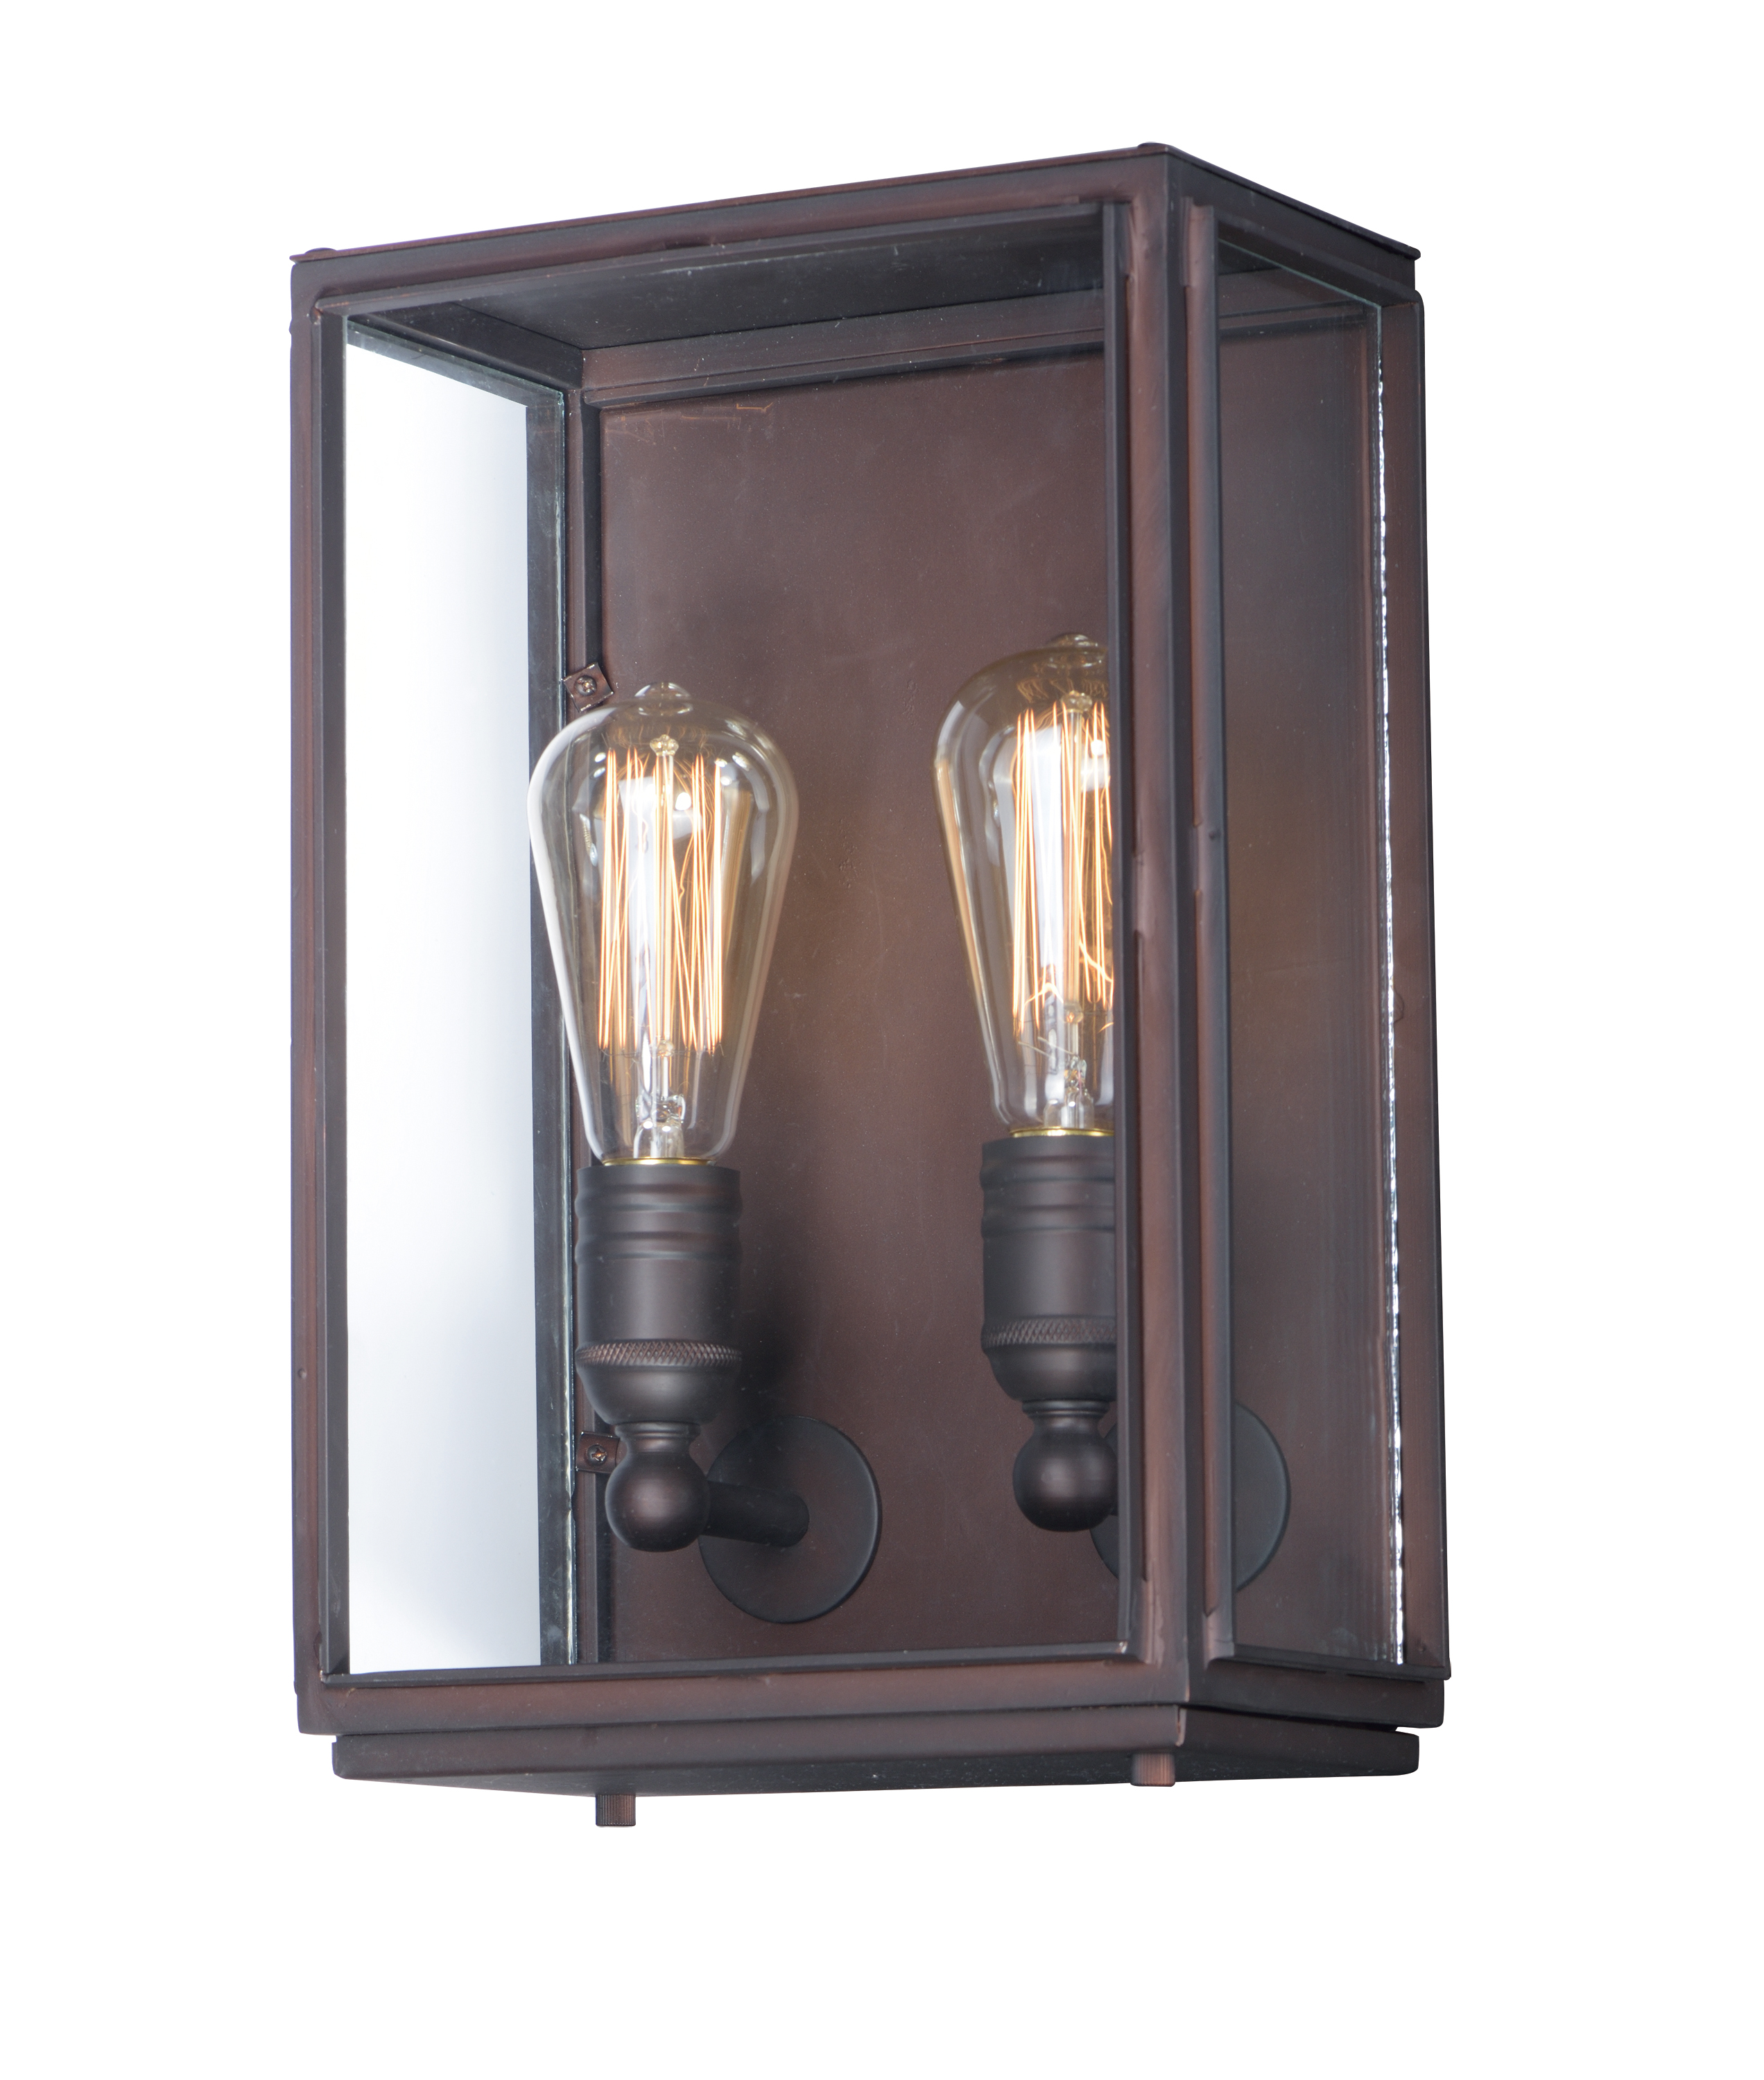 Mounting Height For Exterior Wall Sconces : Pasadena 2-Light Outdoor Wall Lantern - Outdoor Wall Mount - Maxim Lighting